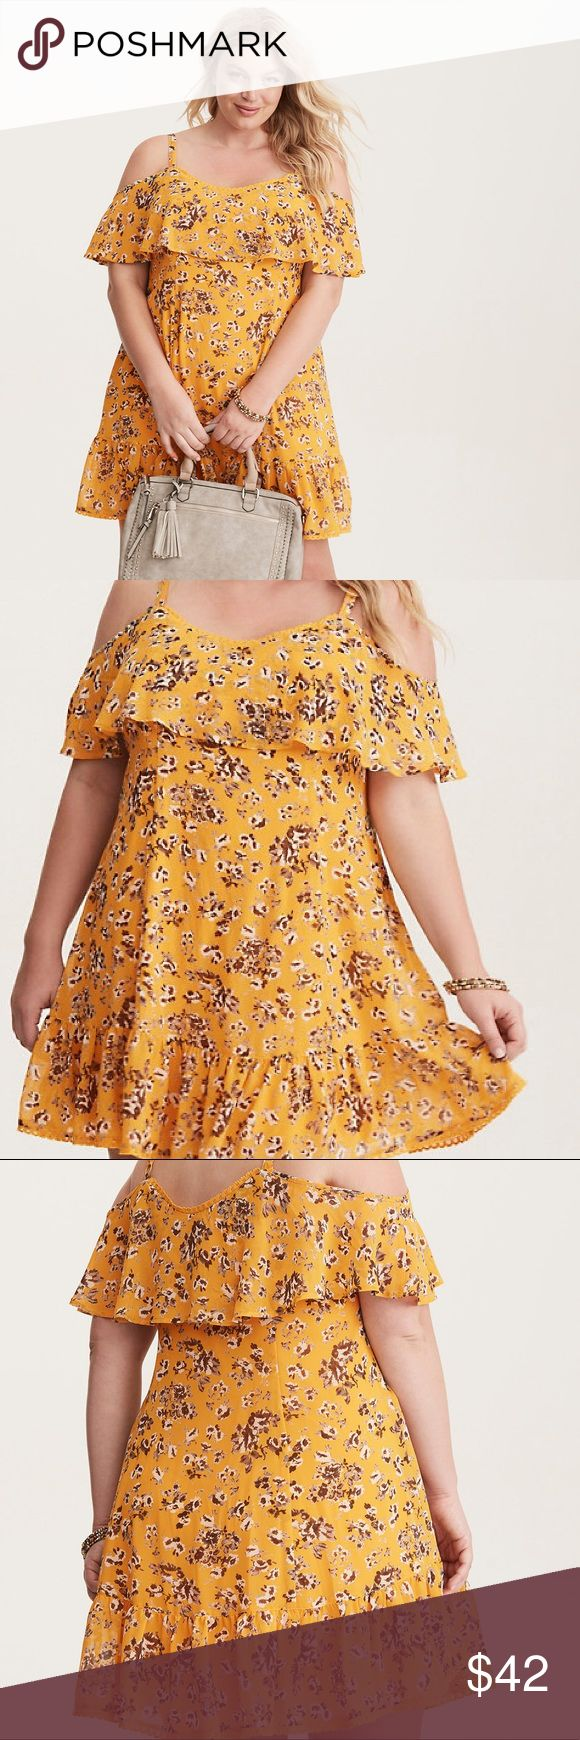 """Torrid Yellow Floral Print Trapeze Dress """"Yup, it's the best dress ever. A flounce overlay on the bodice lends delicate, floaty quality, with lace trim and a ruffled hem offering flirty appeal. Chiffon fabric. V-neck flounce neck. Cold shoulder sleeves. Mini length. No closure. Polyester."""" New with tags, size 3X. torrid Dresses Mini"""